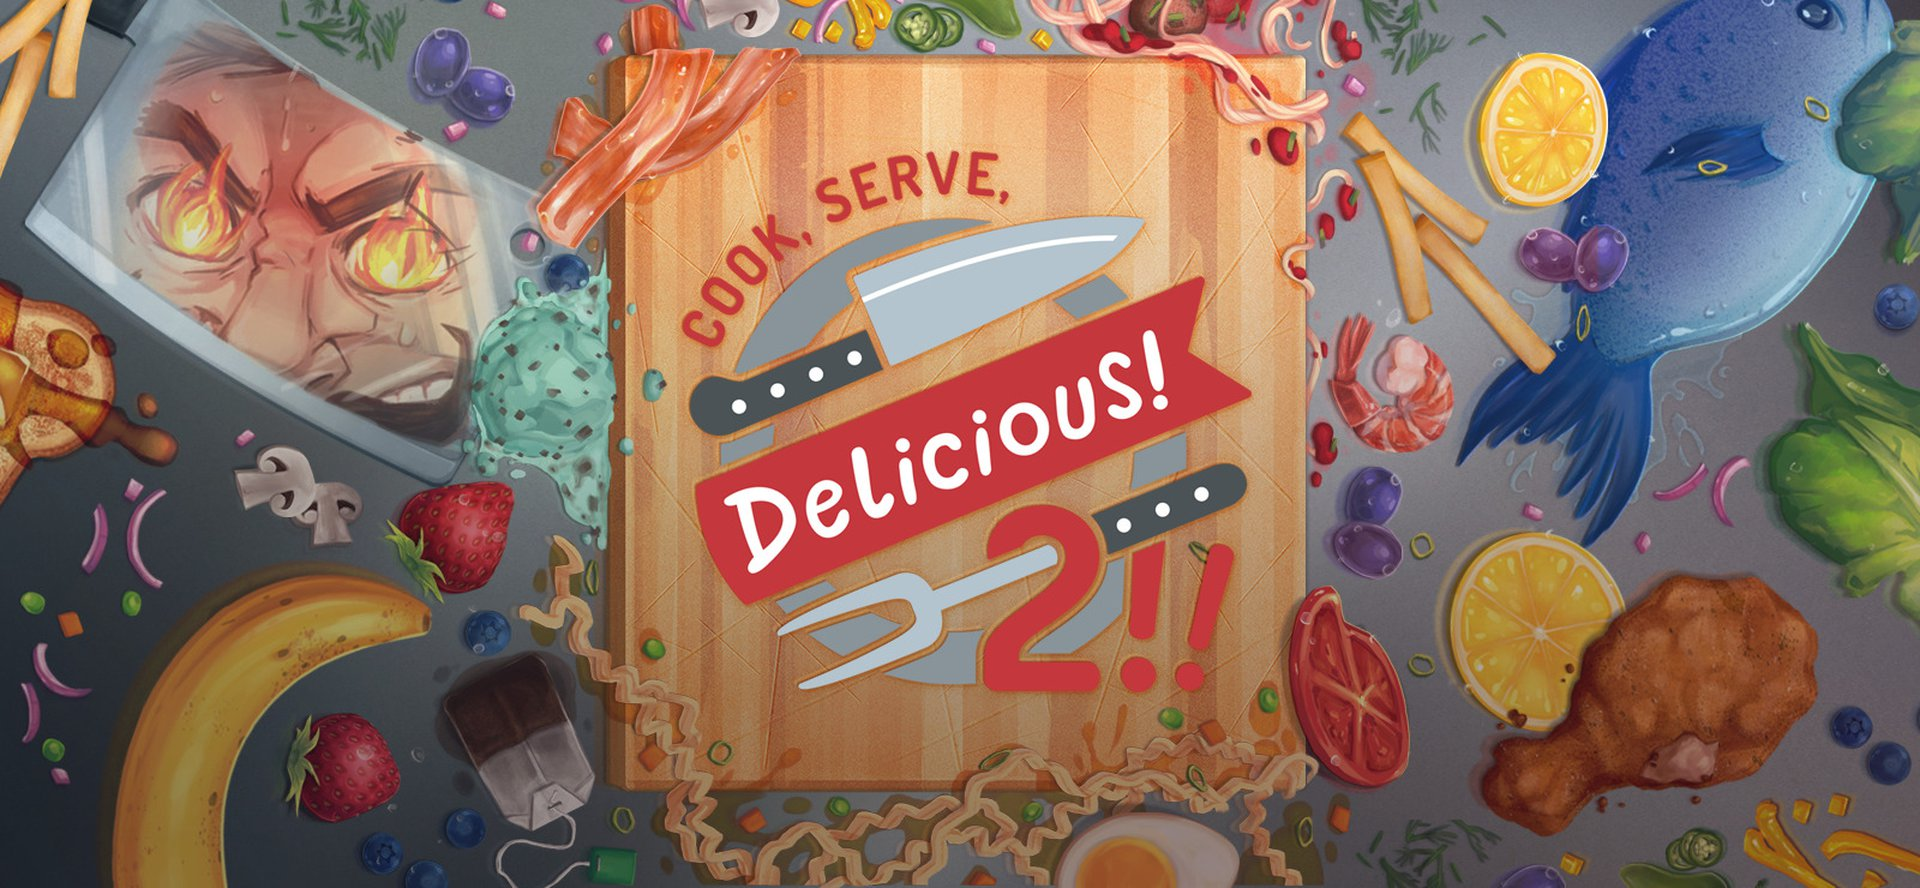 Cook, Serve, Delicious! 2 Video